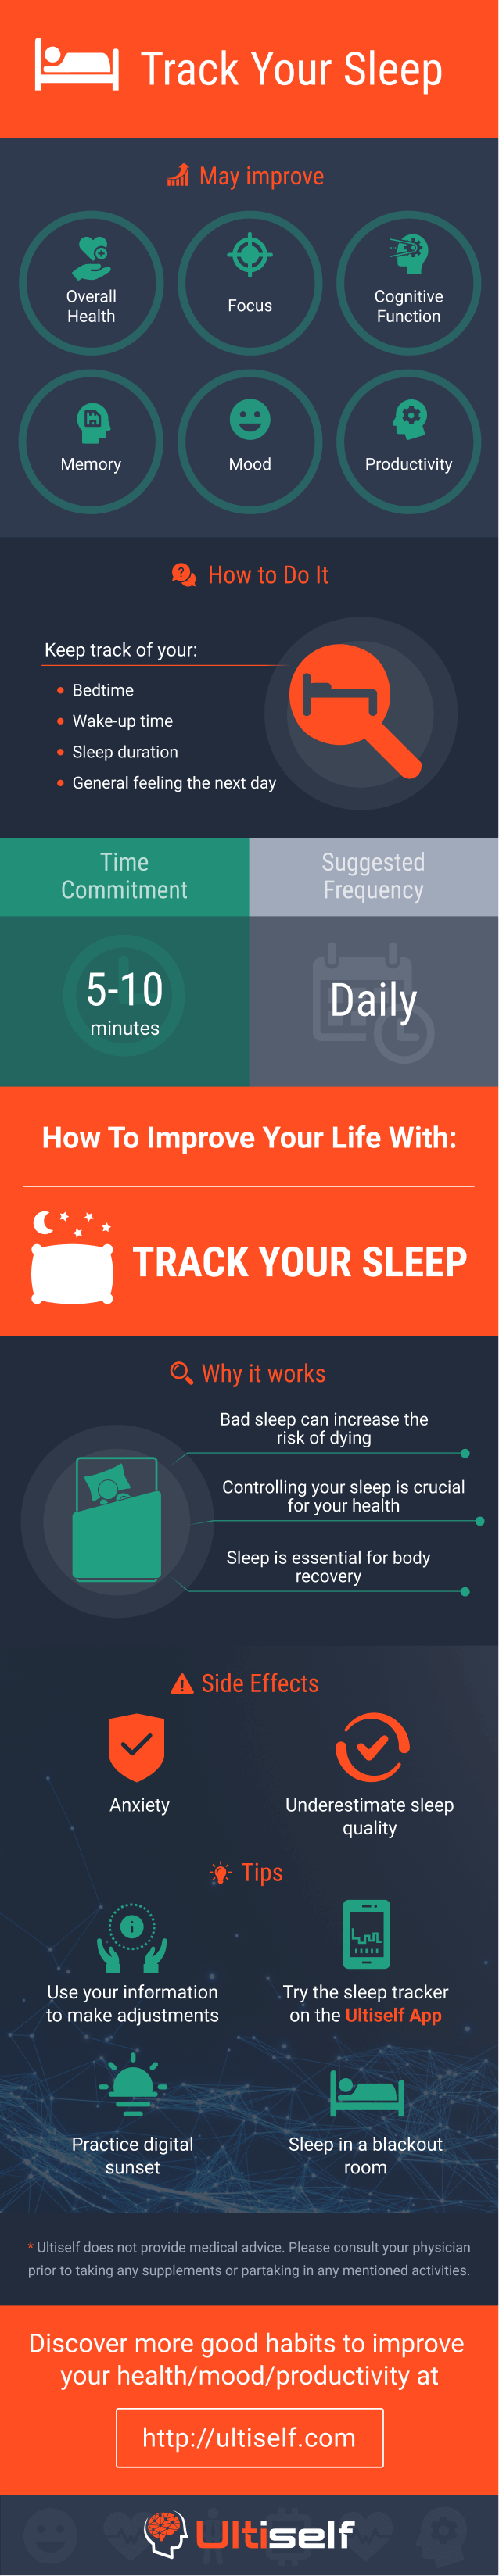 Track your sleep infographic